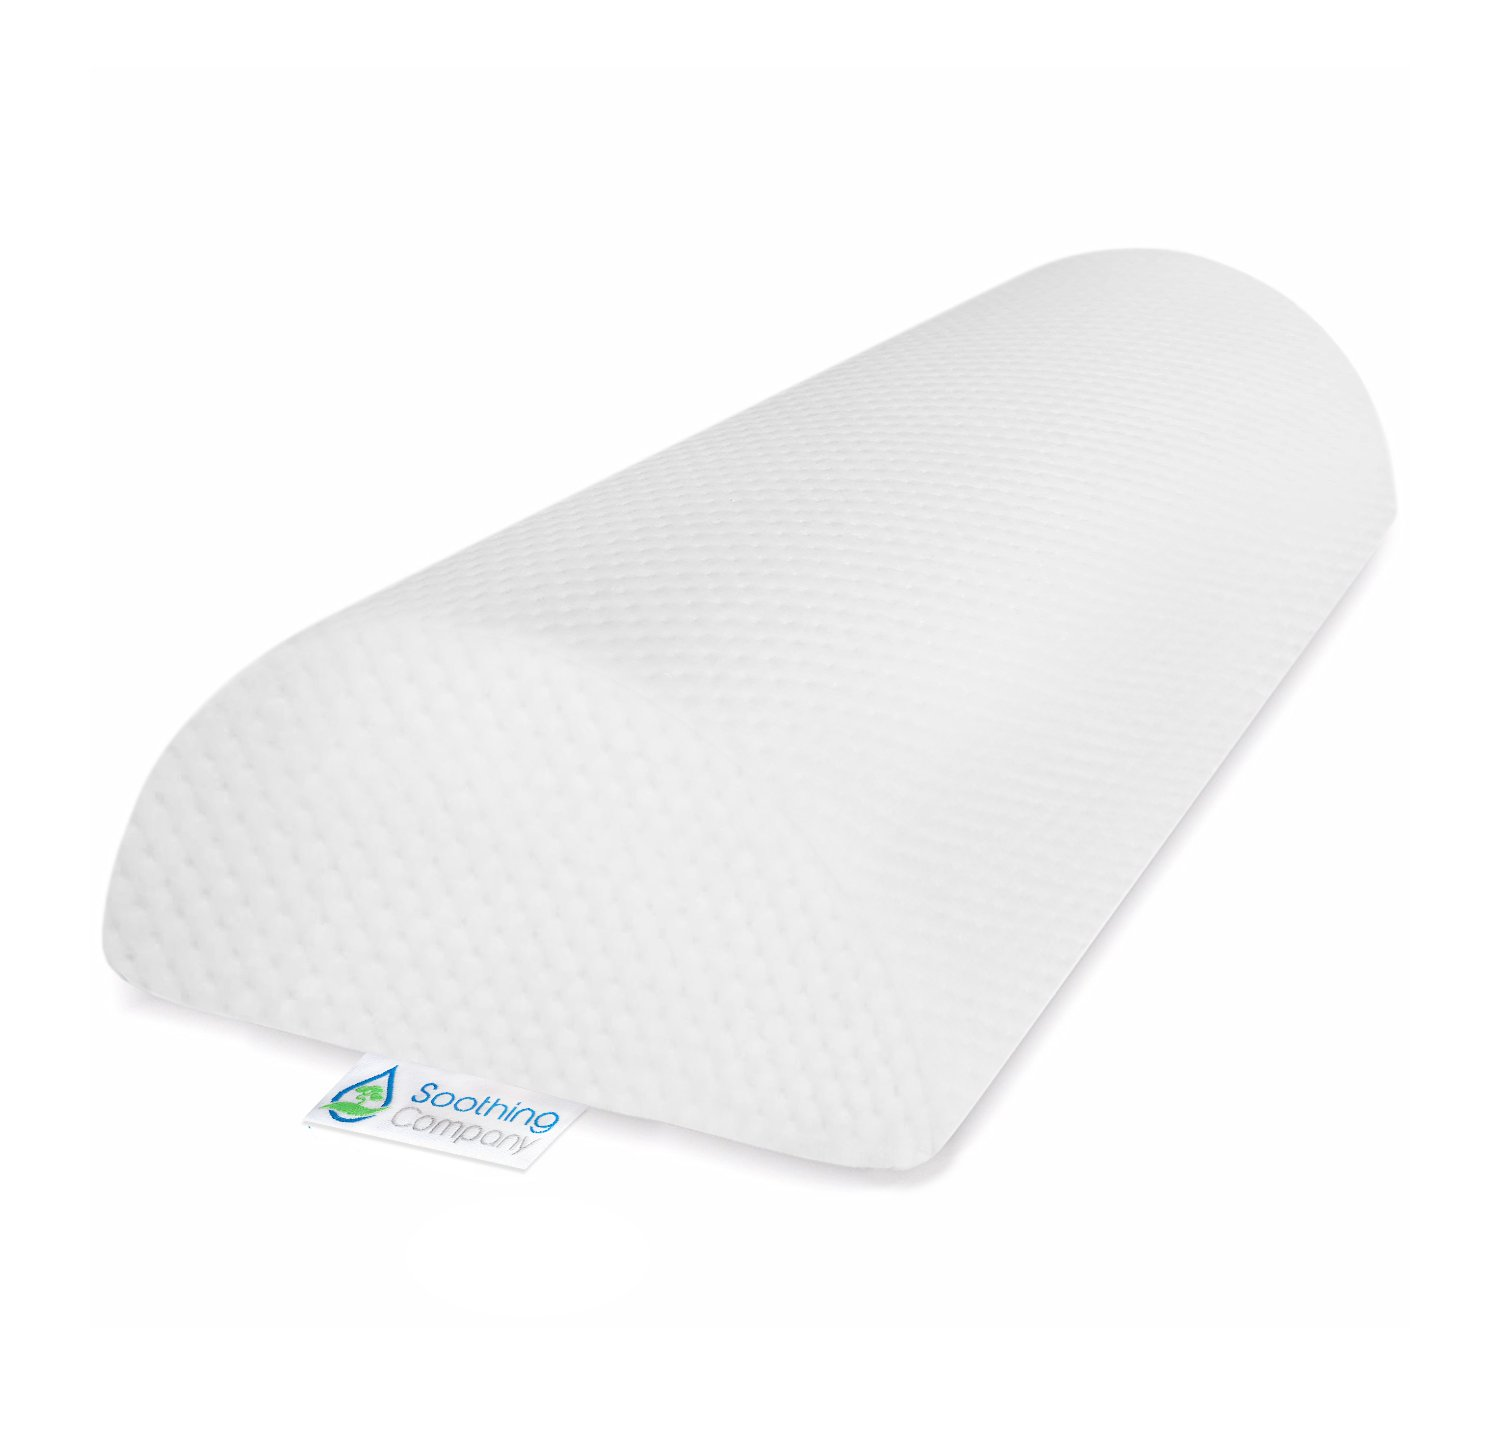 Soothing Company Half Moon Pillow Back Pain Relief - Bolster Knee Pillow Provides Support for Side and Back Sleeping - Memory Foam Leg Roll Pillow - Includes A Washable Organic Cotton Cover